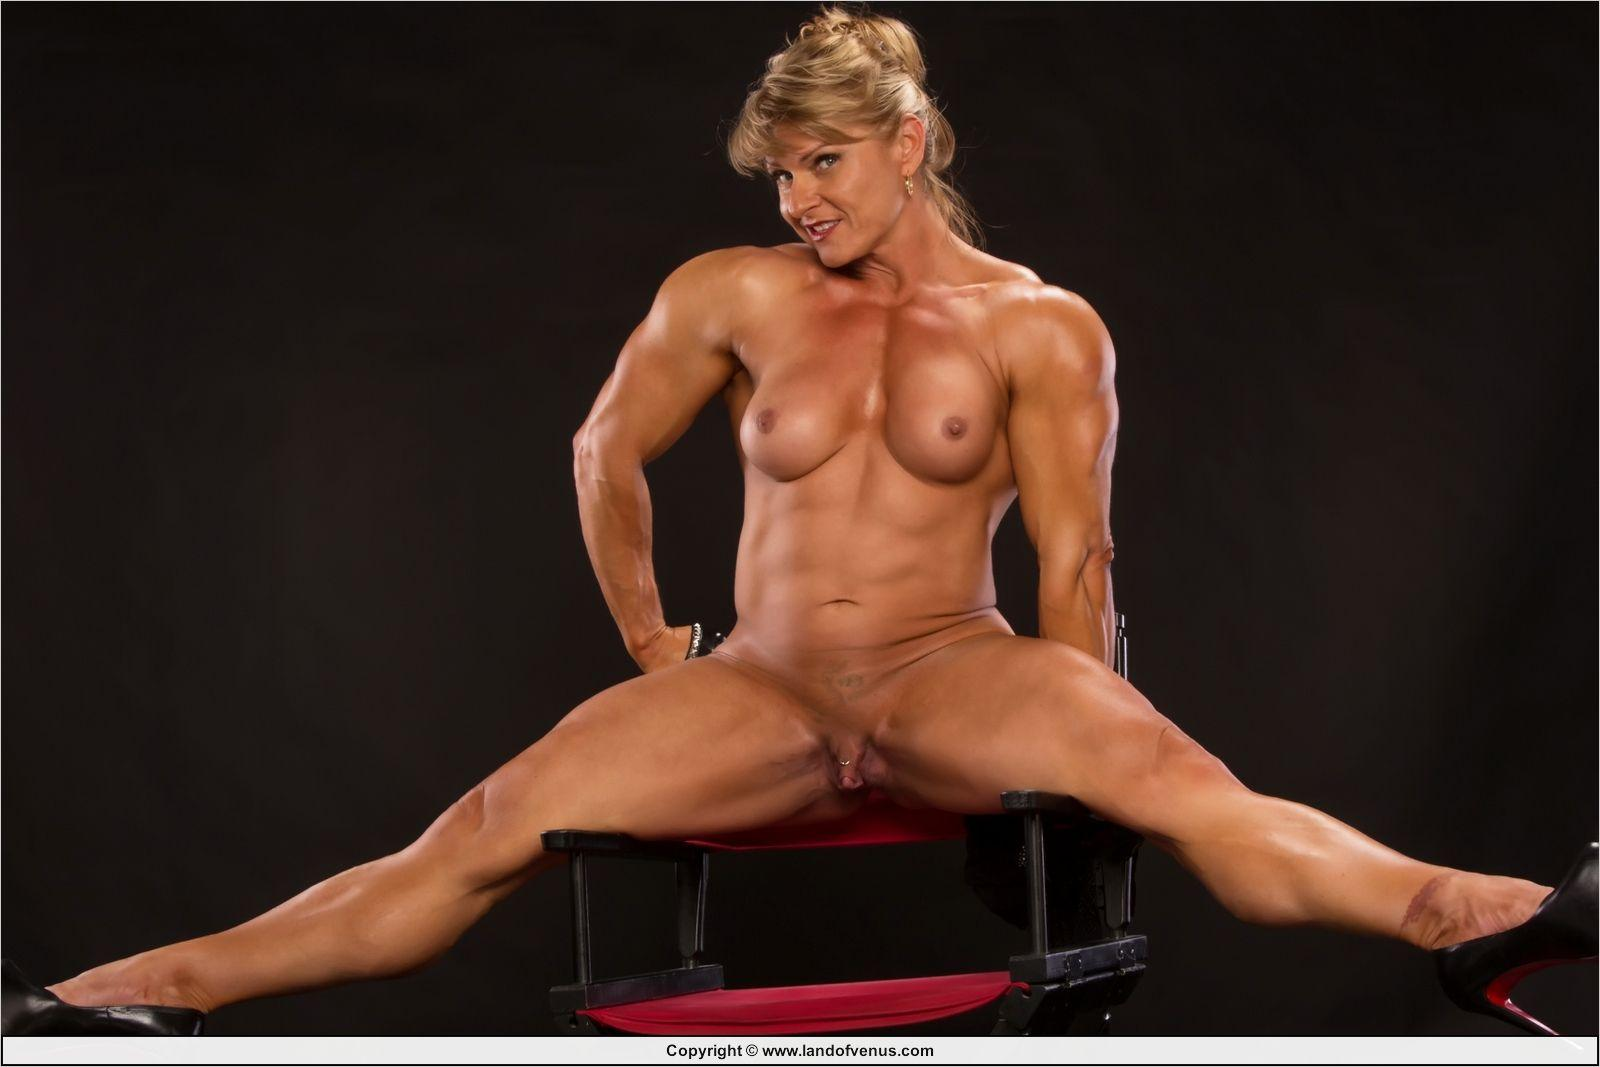 Muscle Women Porn hot muscle women stip - porn compilation free. comments: 2